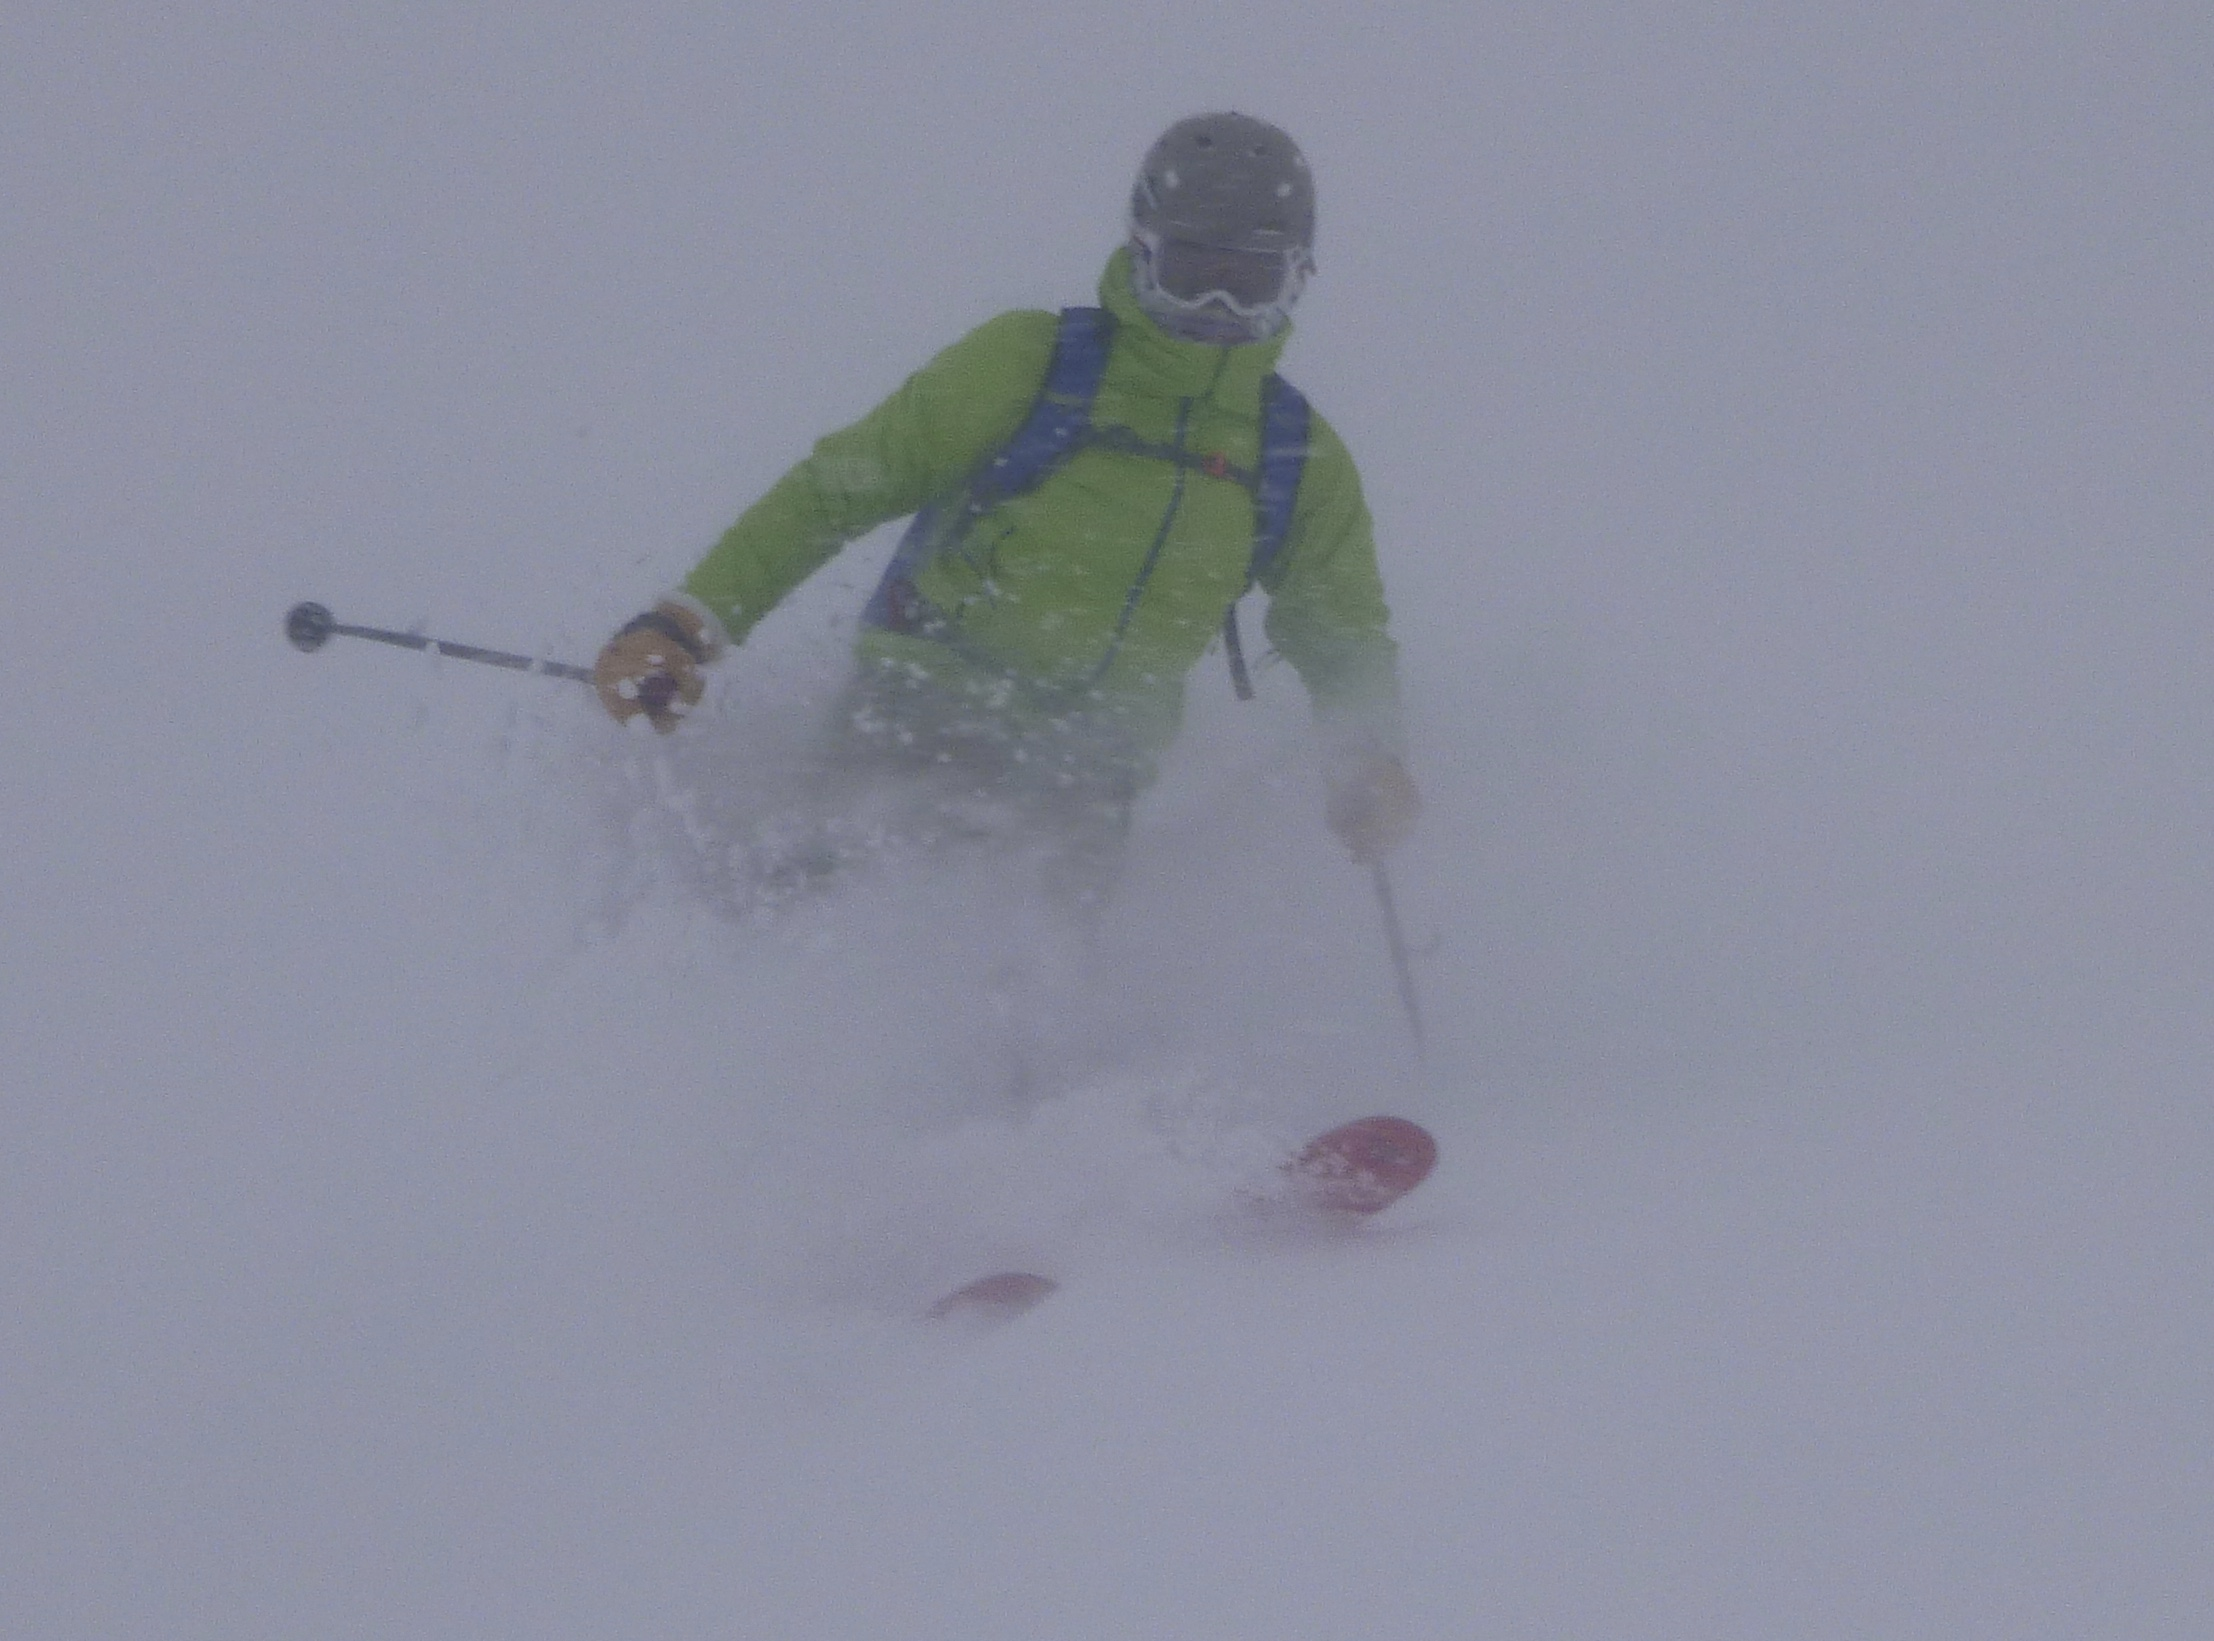 Andy found it a little easier on his big fat powder skis!